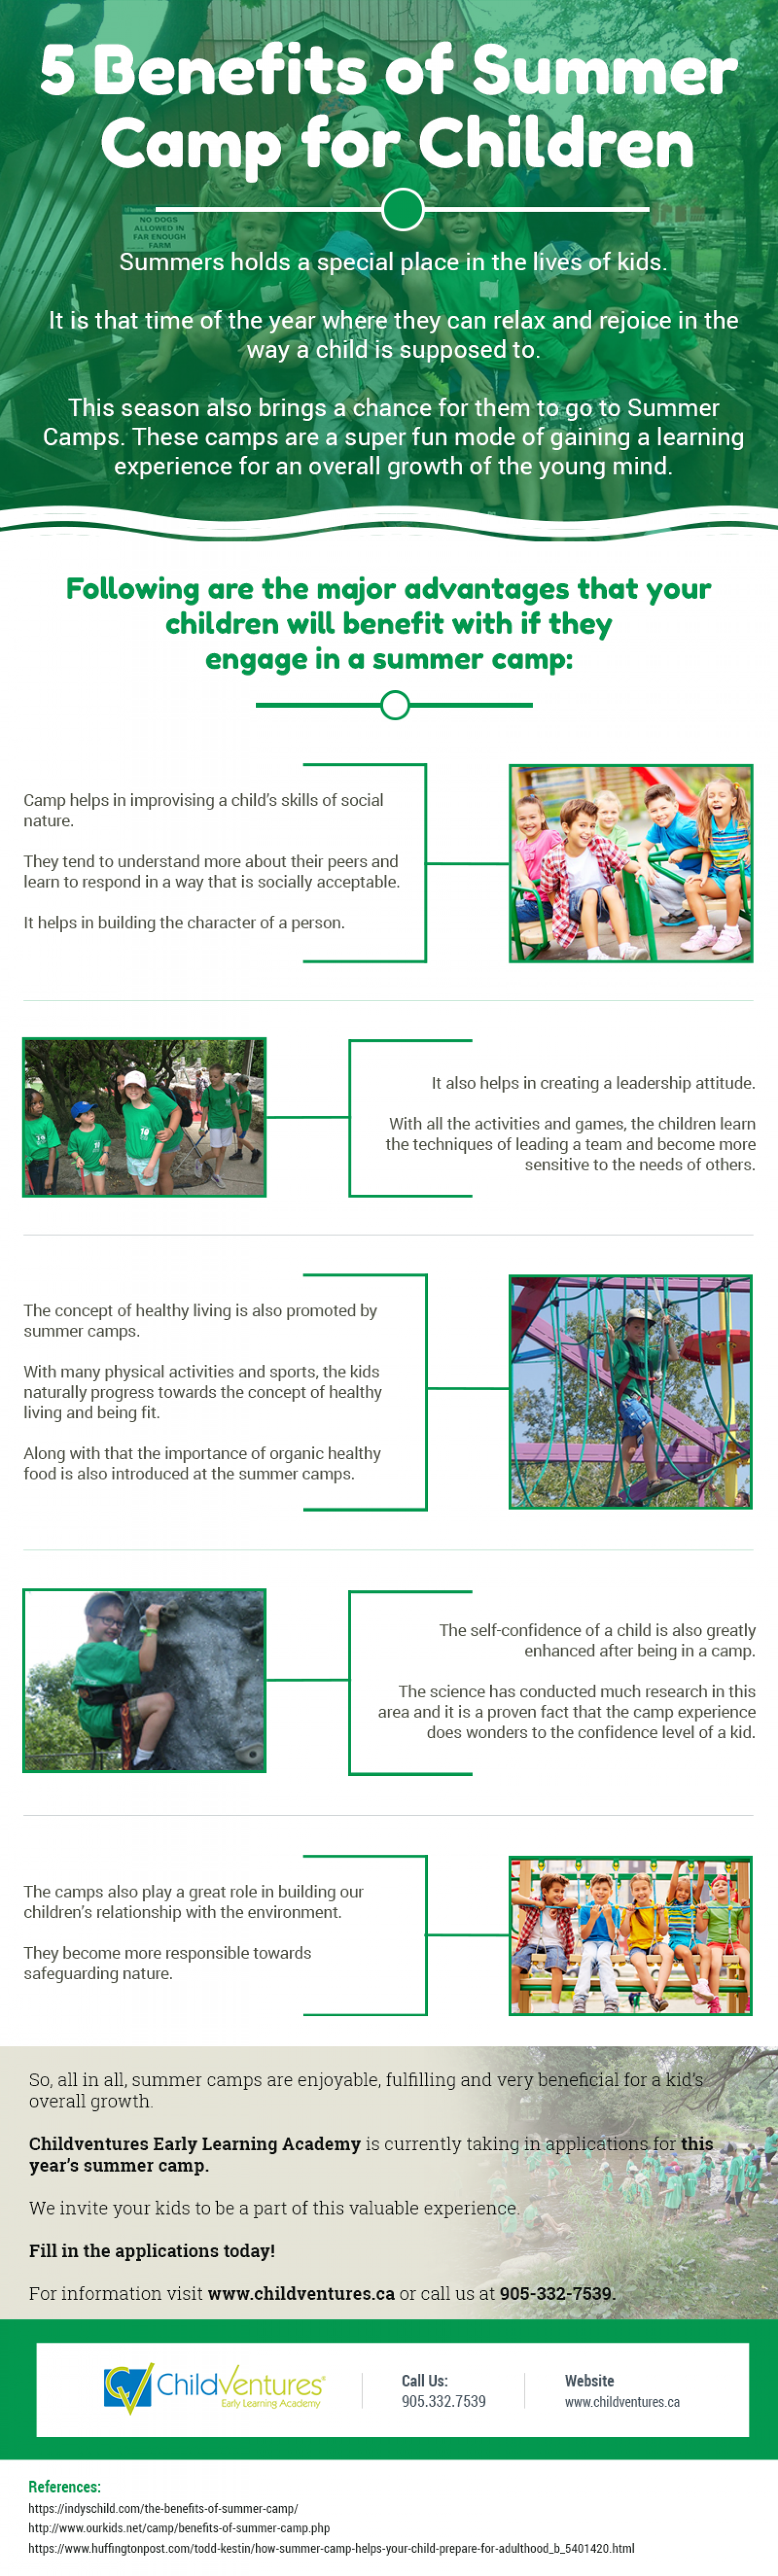 The Benefits of Summer Camp for Children Infographic